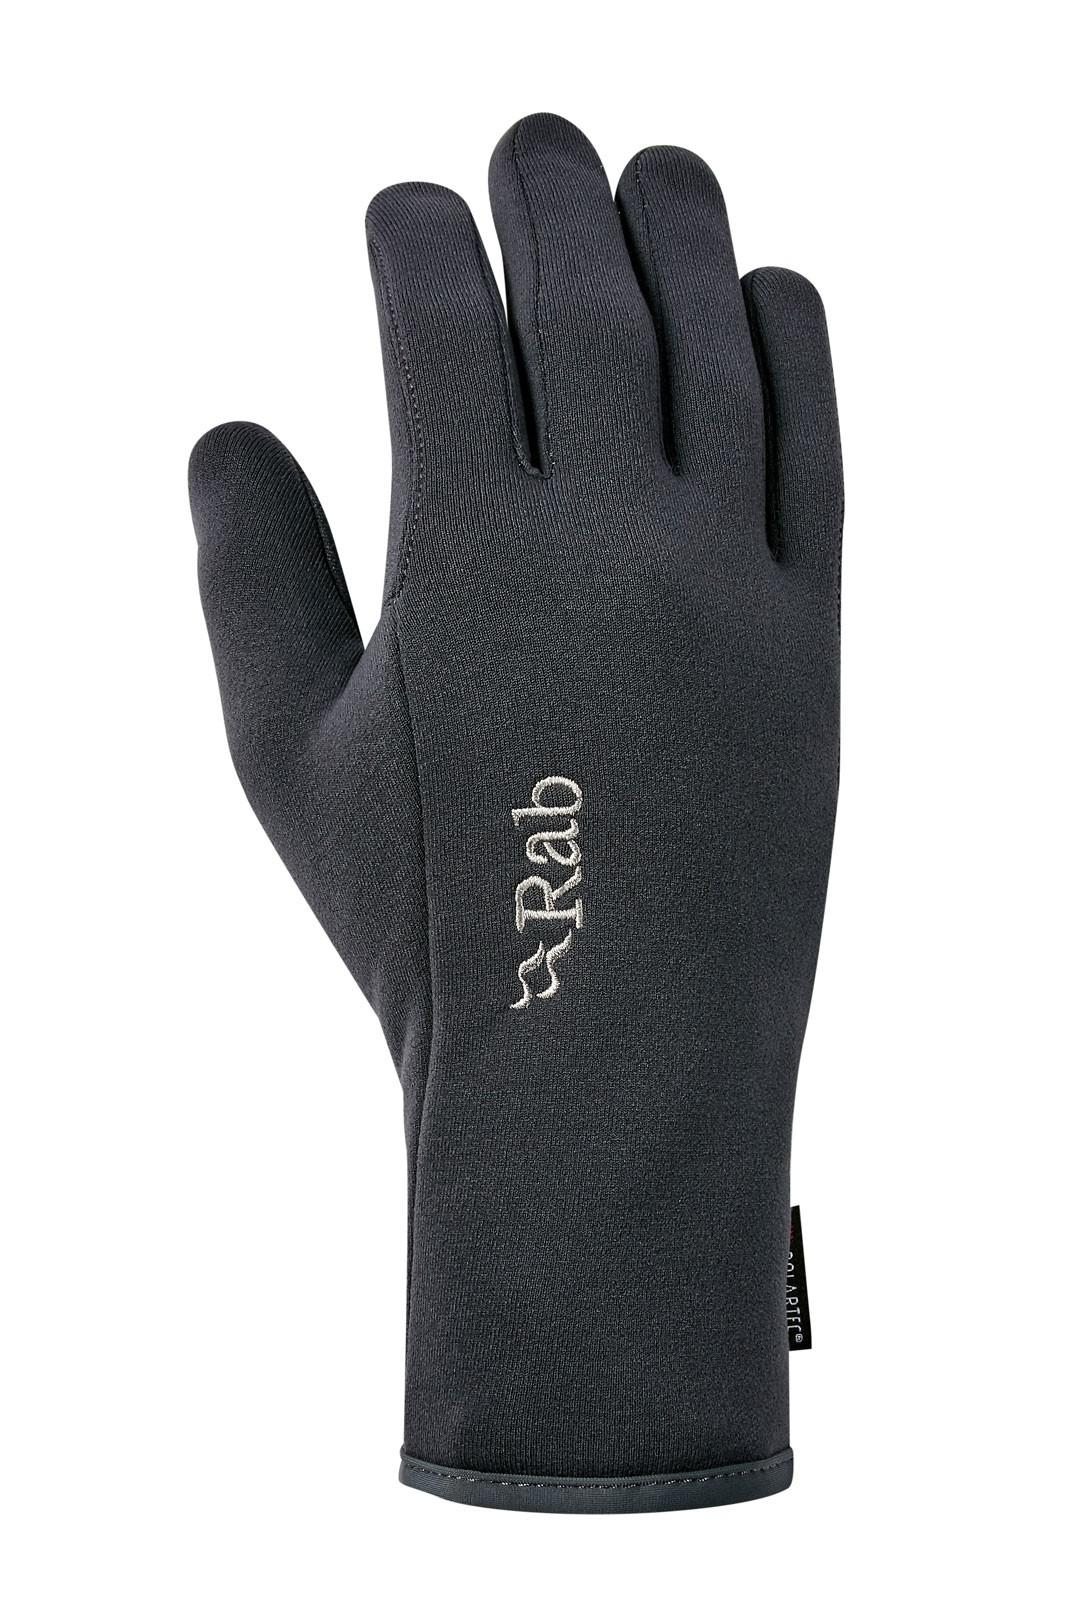 Rab Power Stretch Contact Glove Mens - Beluga